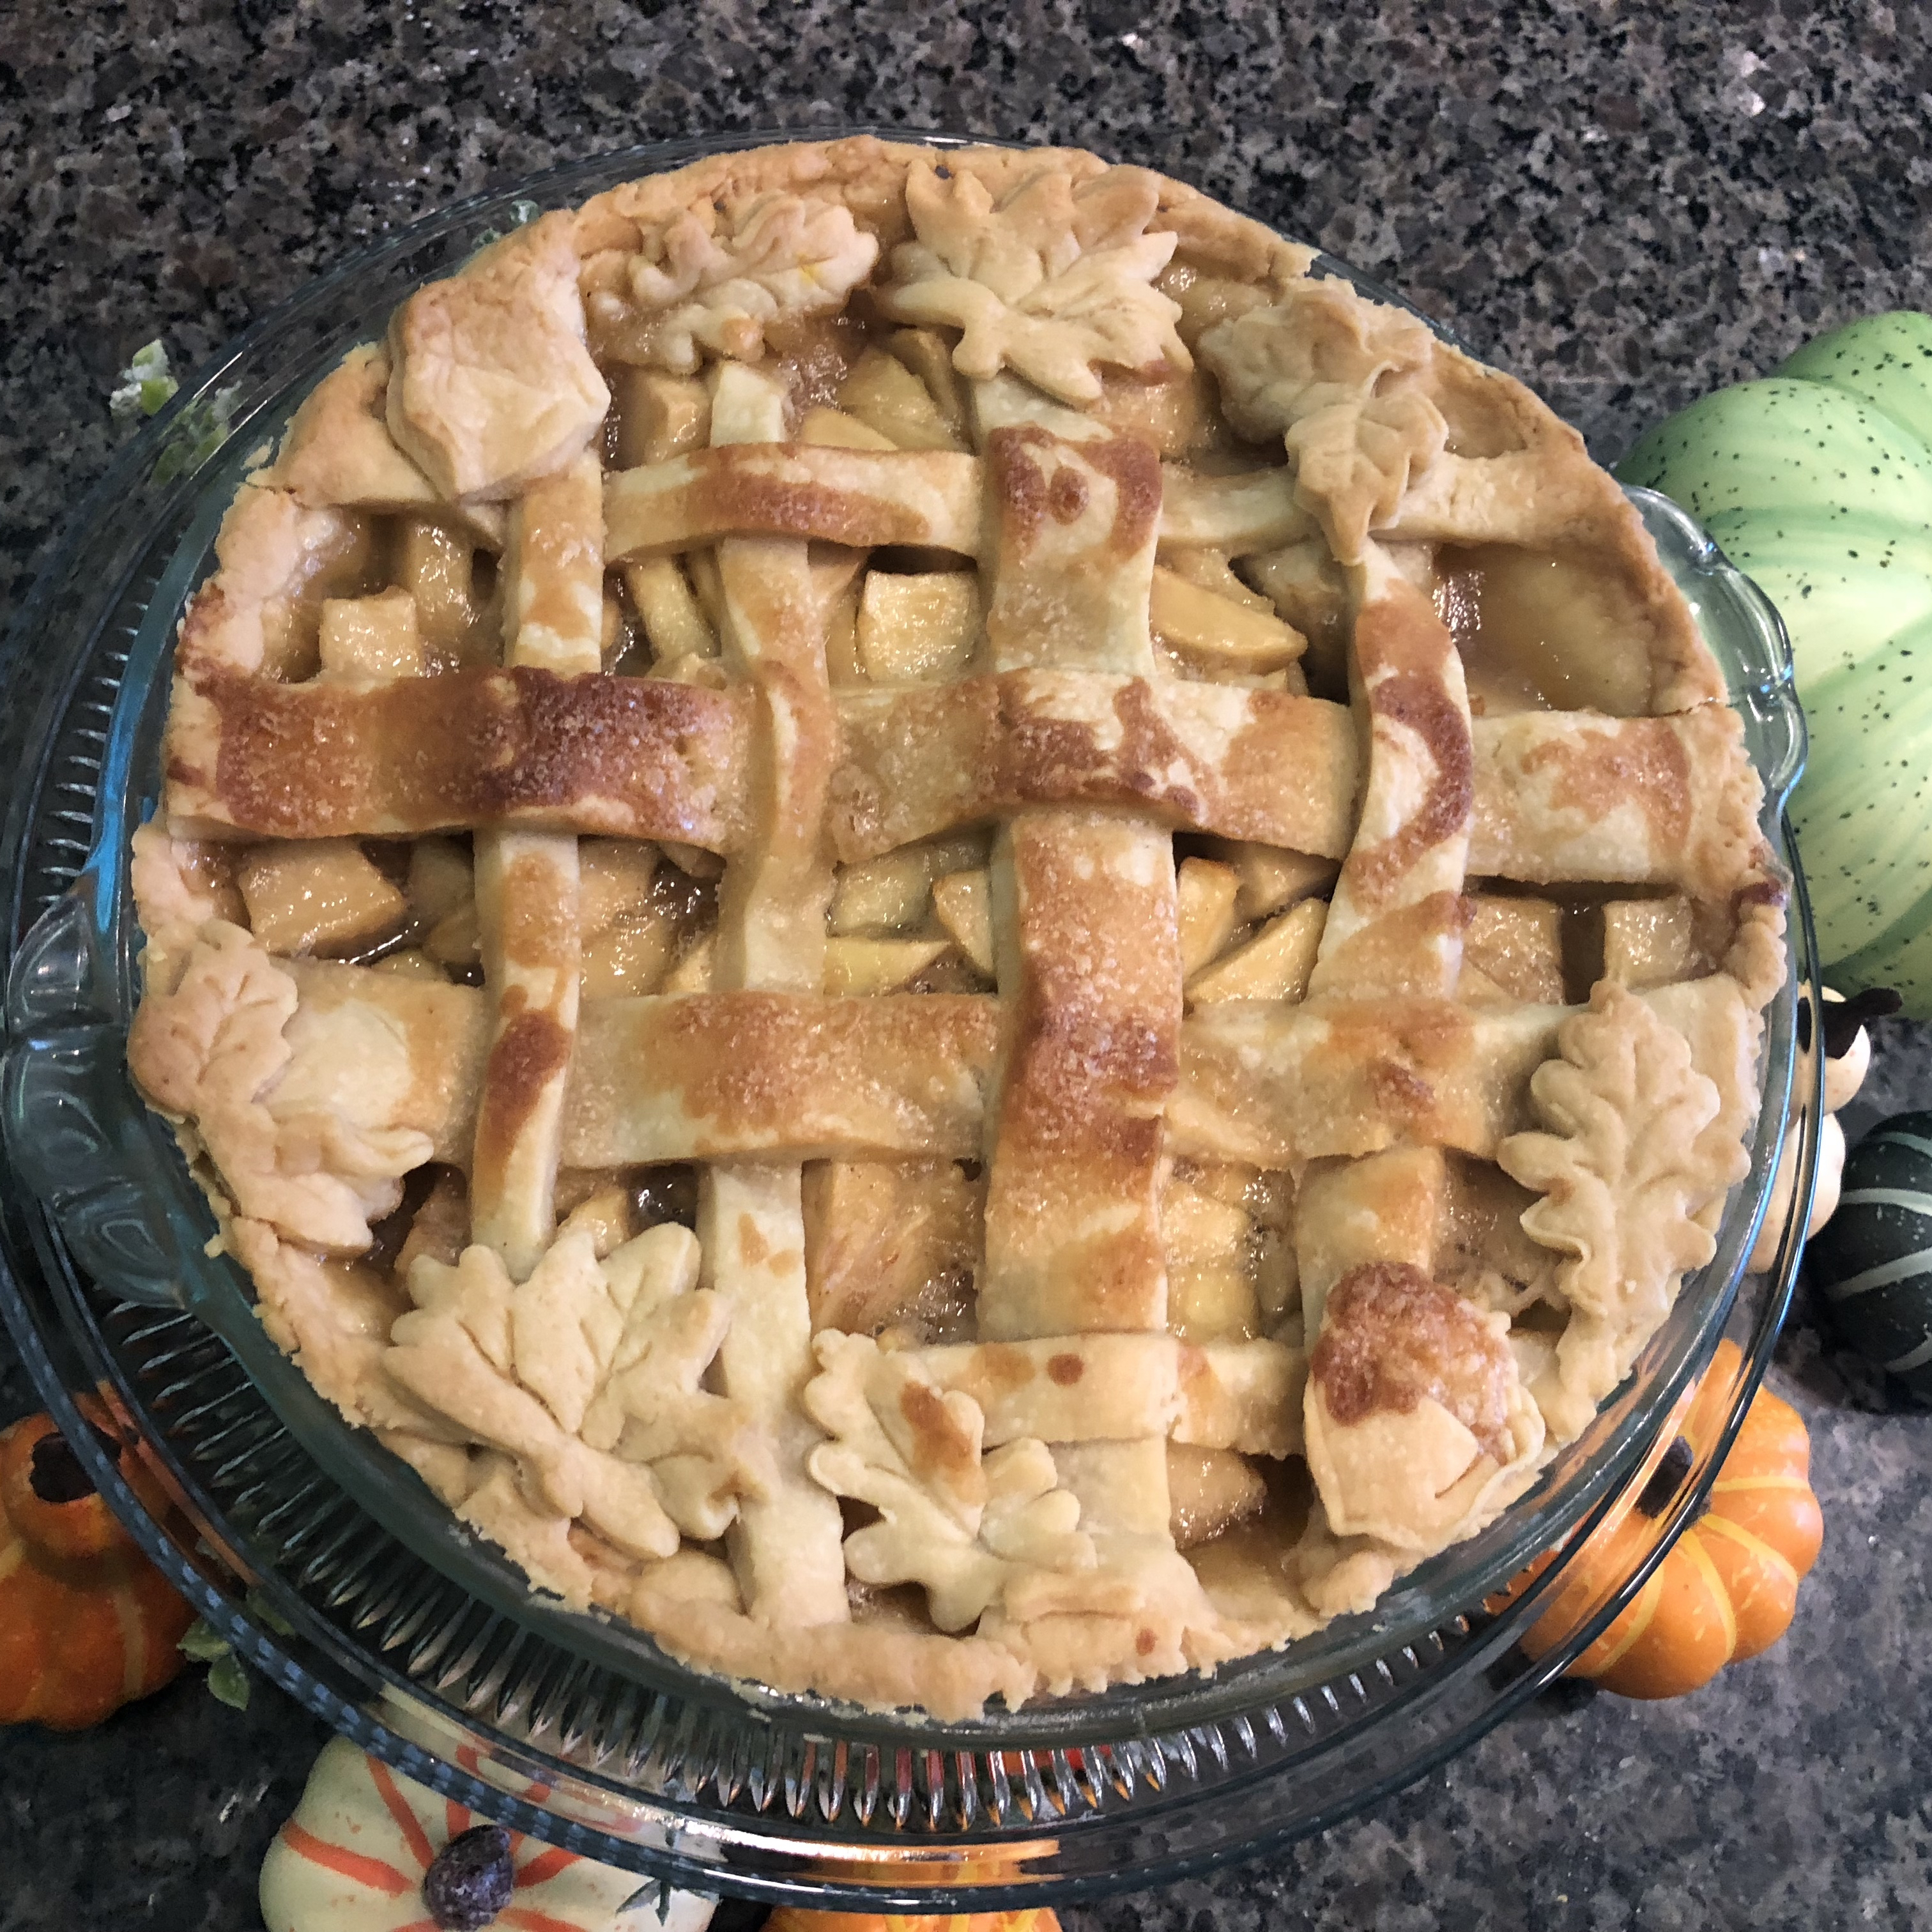 Apple Pie by Grandma Ople Natalie Moore